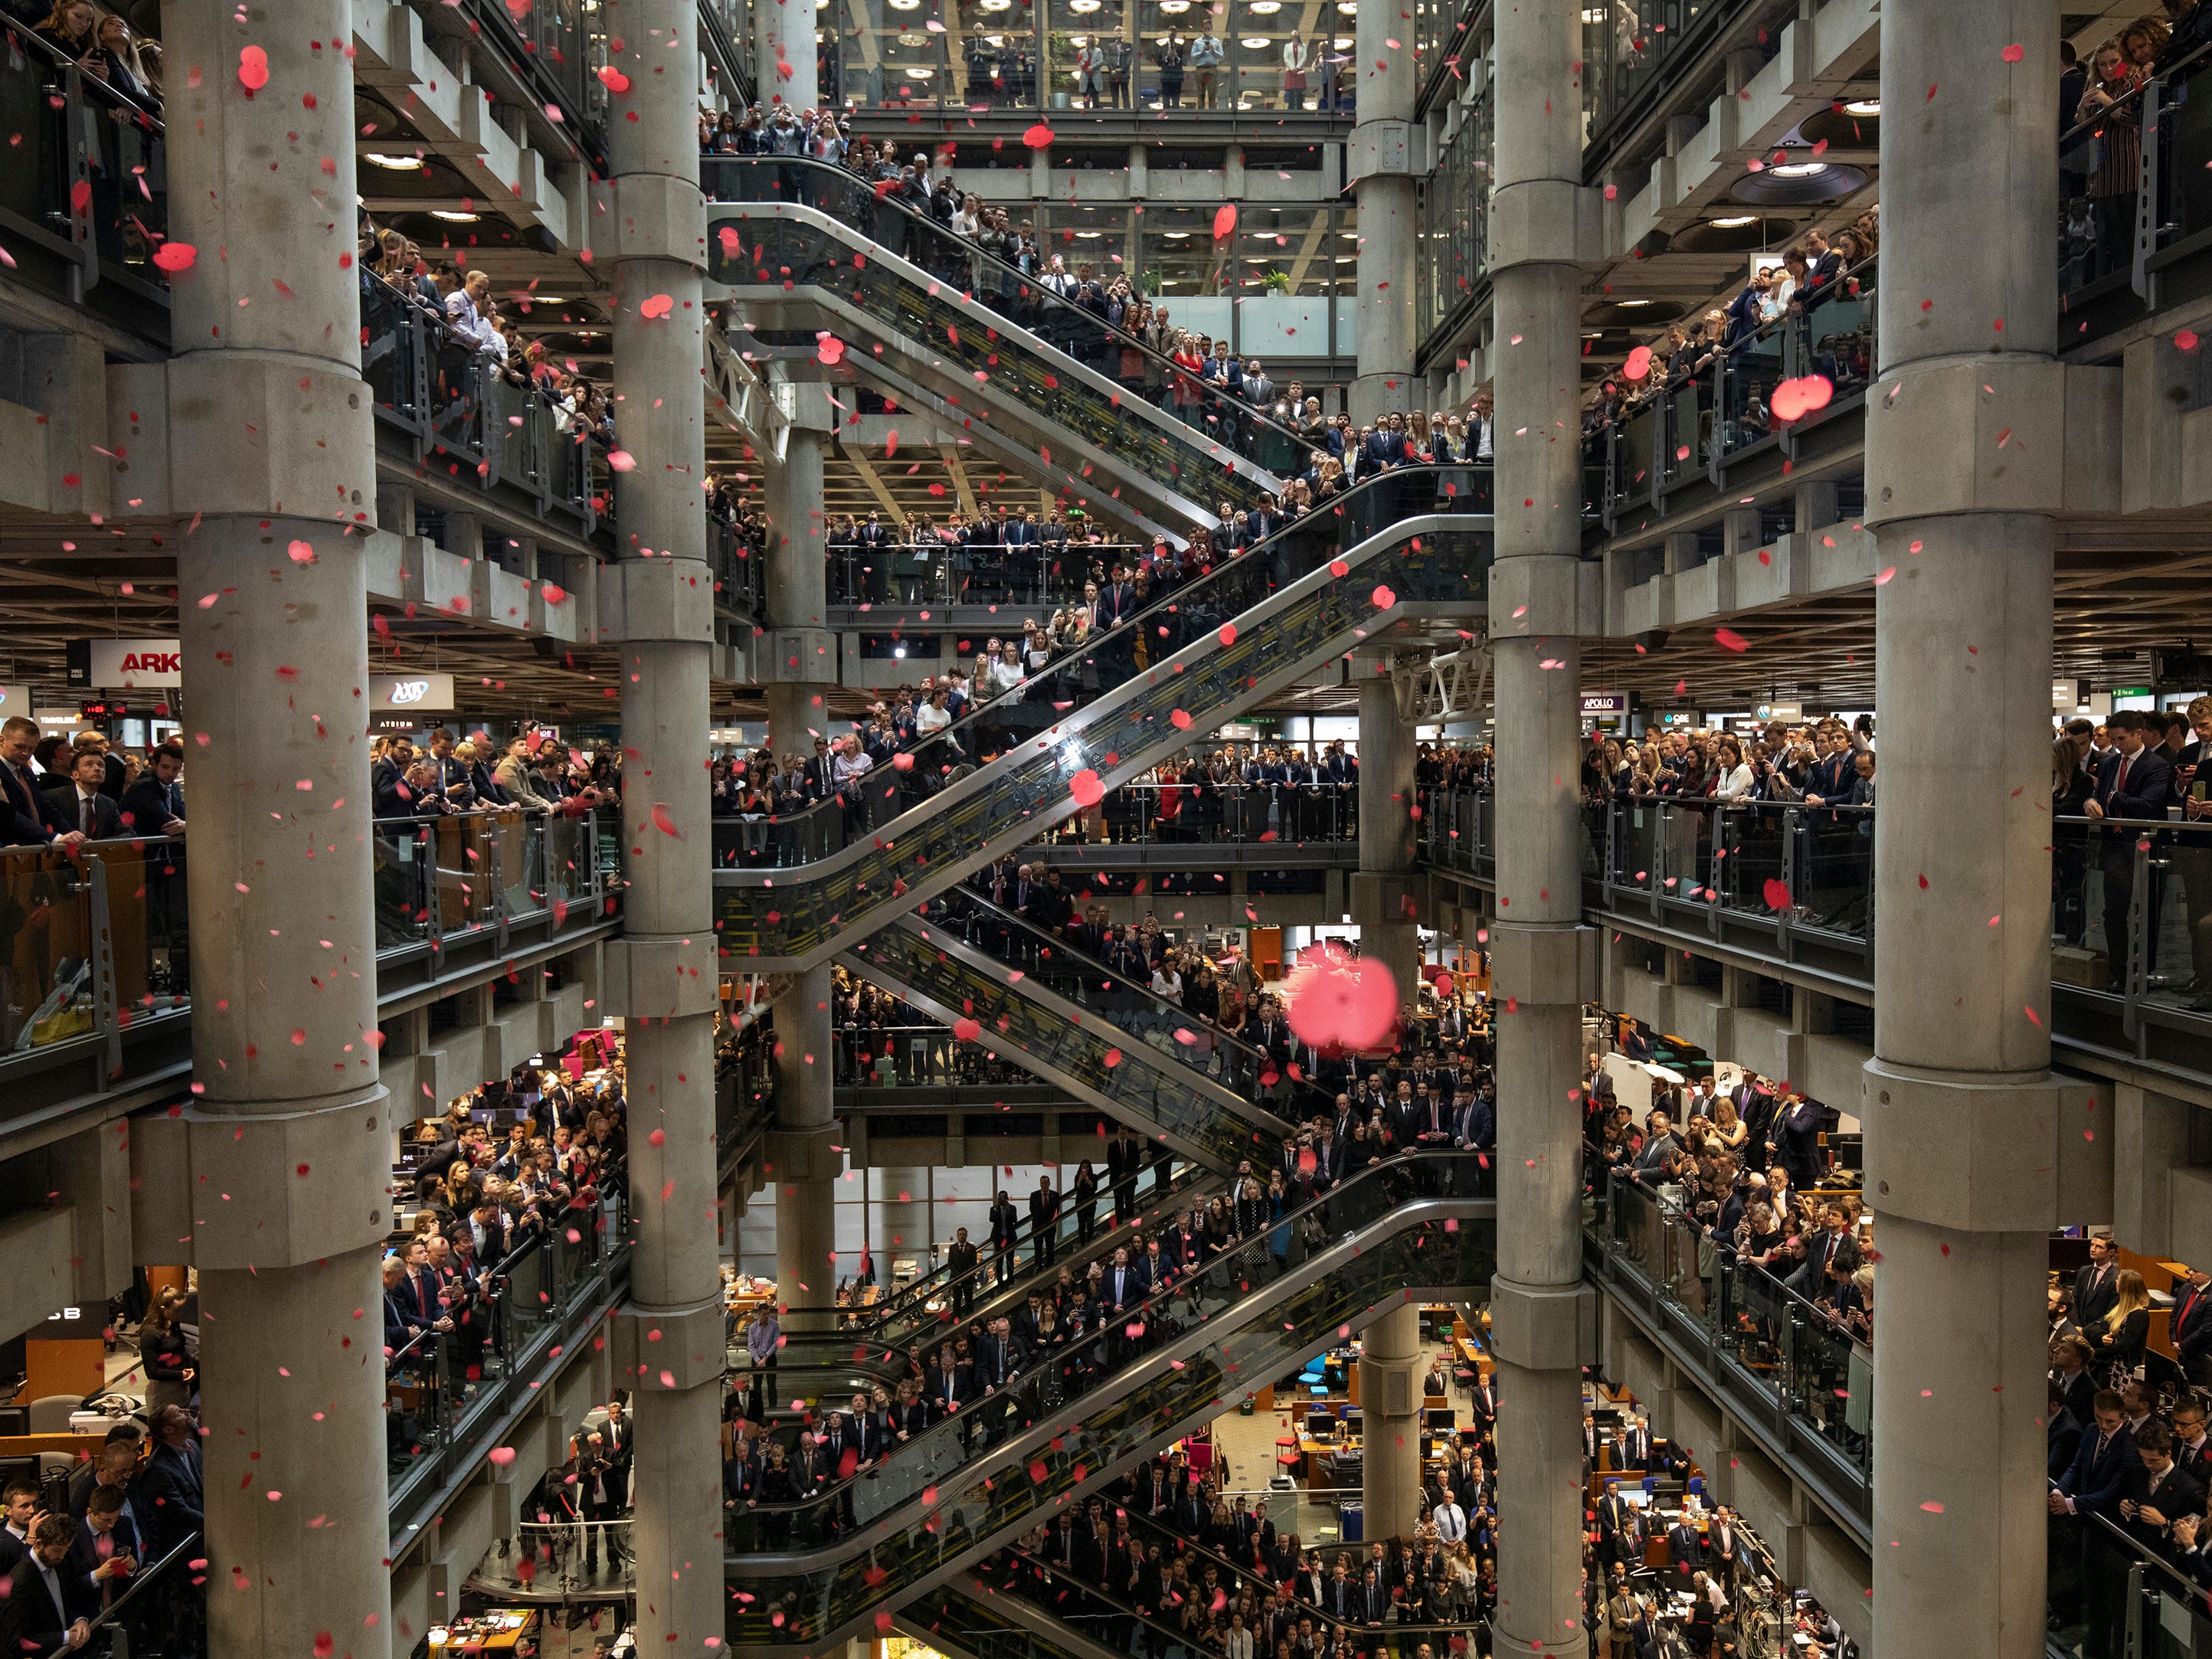 Poppies are dropped as brokers and underwriters line the balconies and escalators of the Lloyd's of London building during a service of remembrance for the veterans of World War I on November 9, 2018 in London, England.  The armistice ending the First World War between the Allies and Germany was signed 100 years ago at Compiégne, France on November 11, 1918.